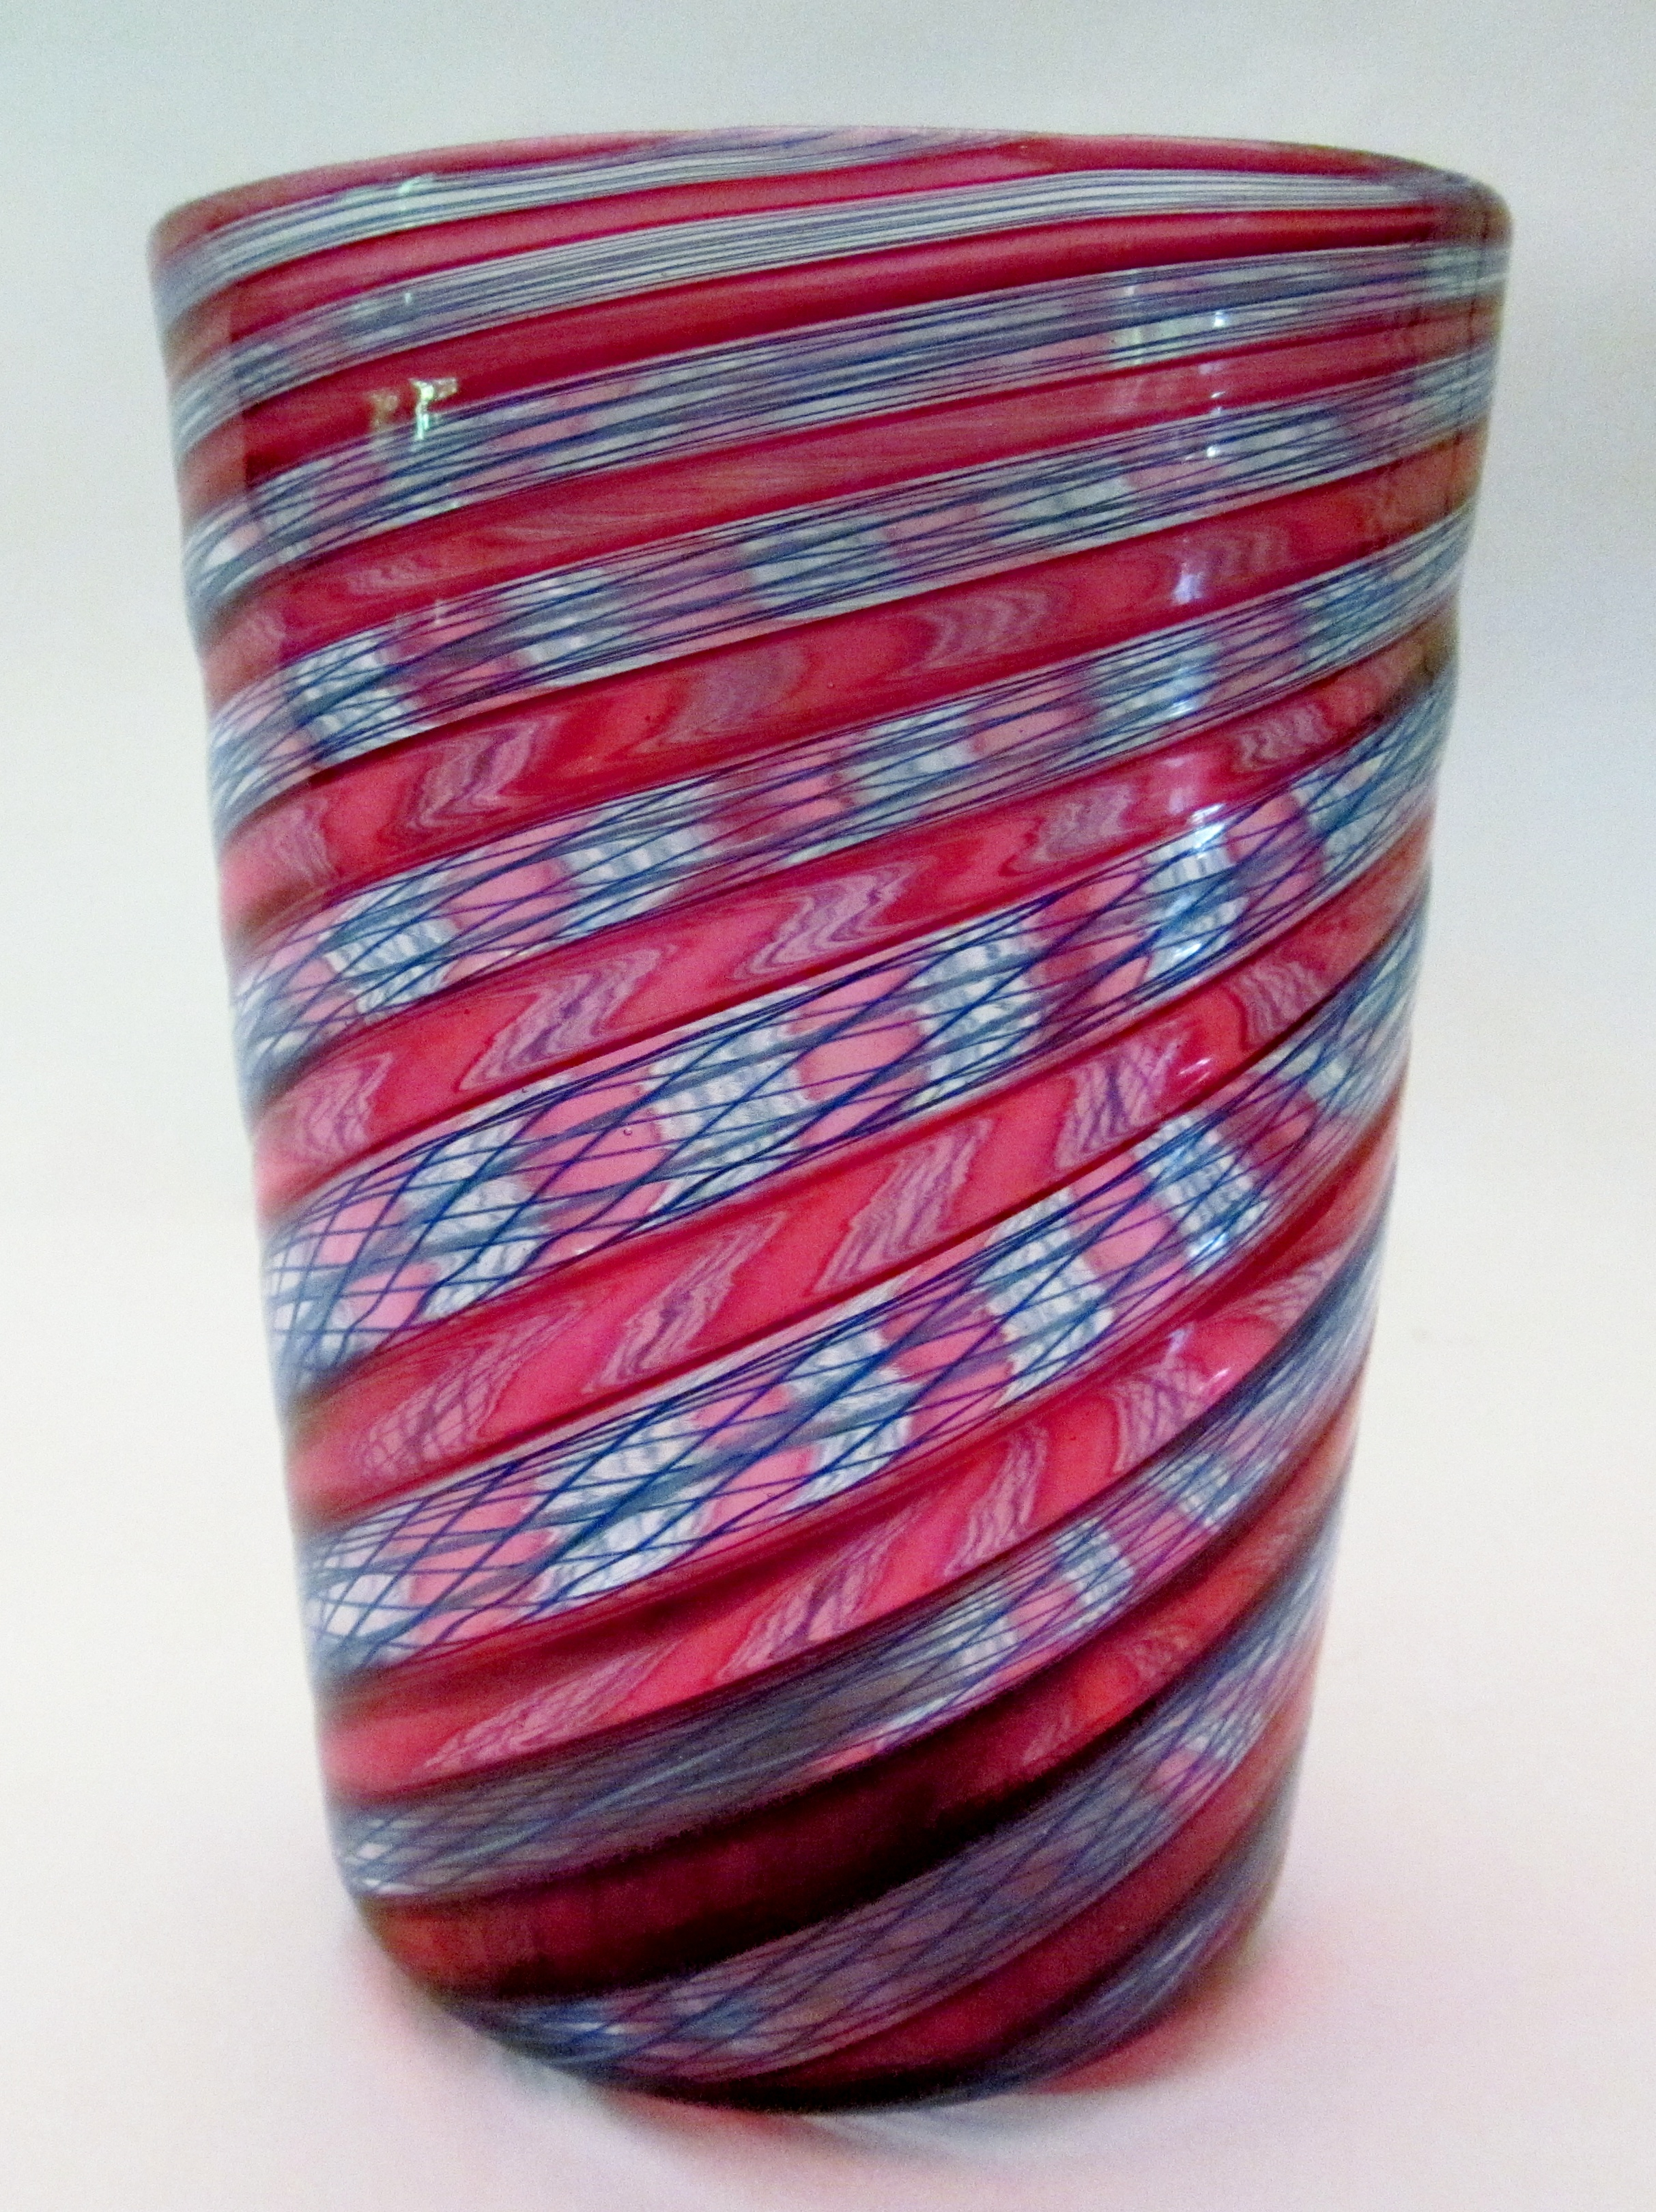 Gold Ruby and Blue Netti Cane Glass.jpg